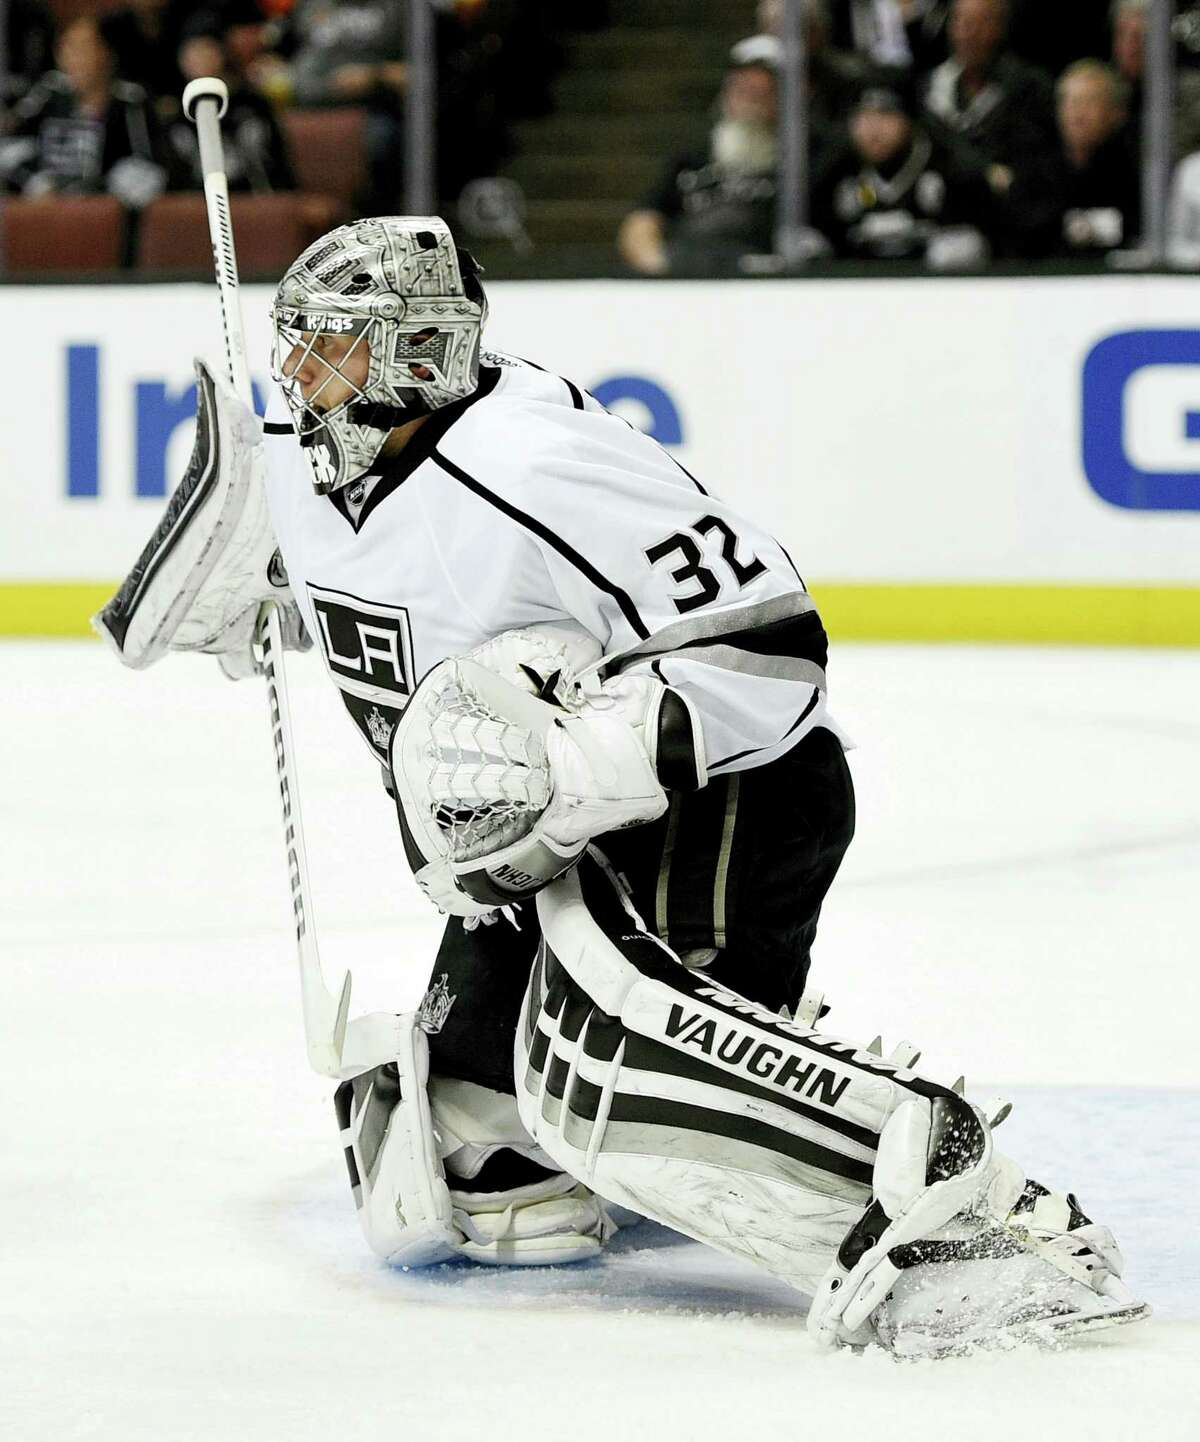 Los Angeles Kings goalie Jonathan Quick of Hamden was selected to compete for the U.S. team at the World Cup of Hockey Sept. 17 - Oct. 1 in Toronto.